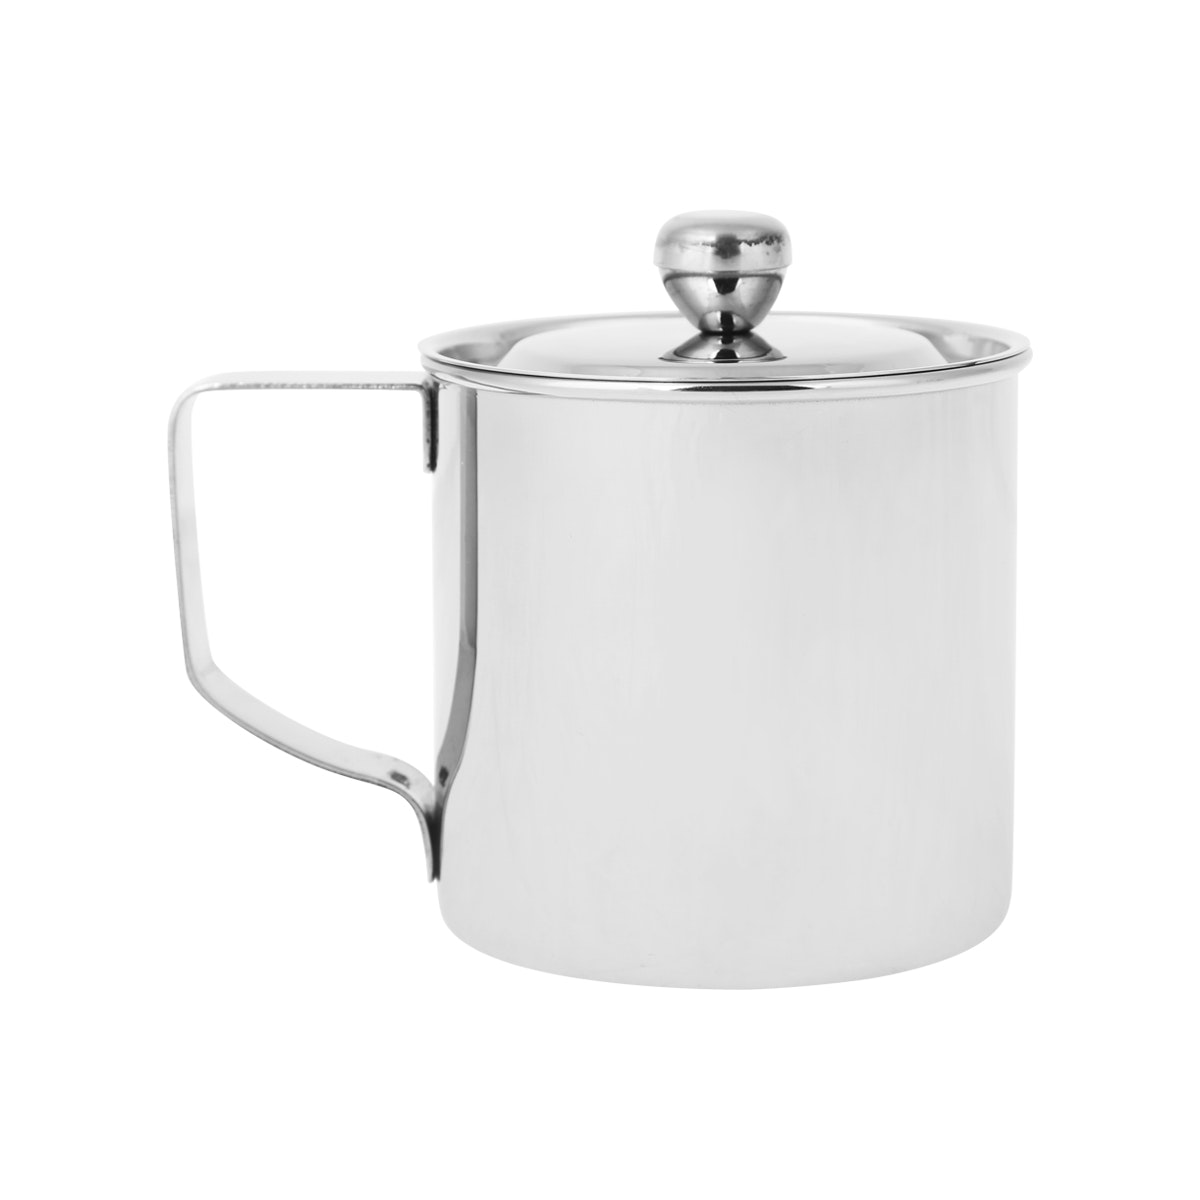 Cookville Stainless Steel Mug With Cover [8cm]